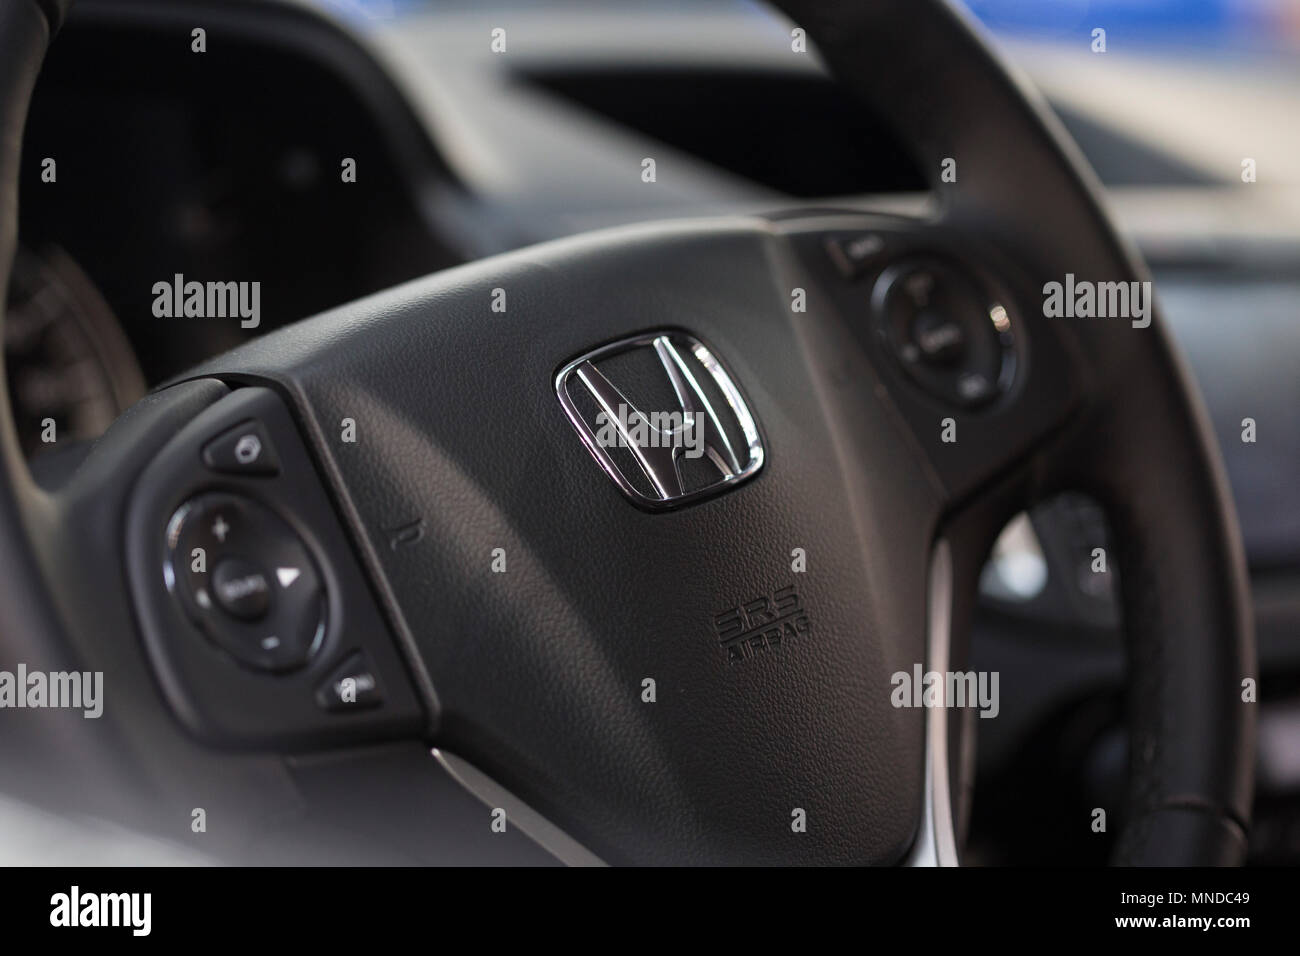 Honda Motor Company Ltd Is A Japanese Public Multinational Conglomerate Corporation Known As